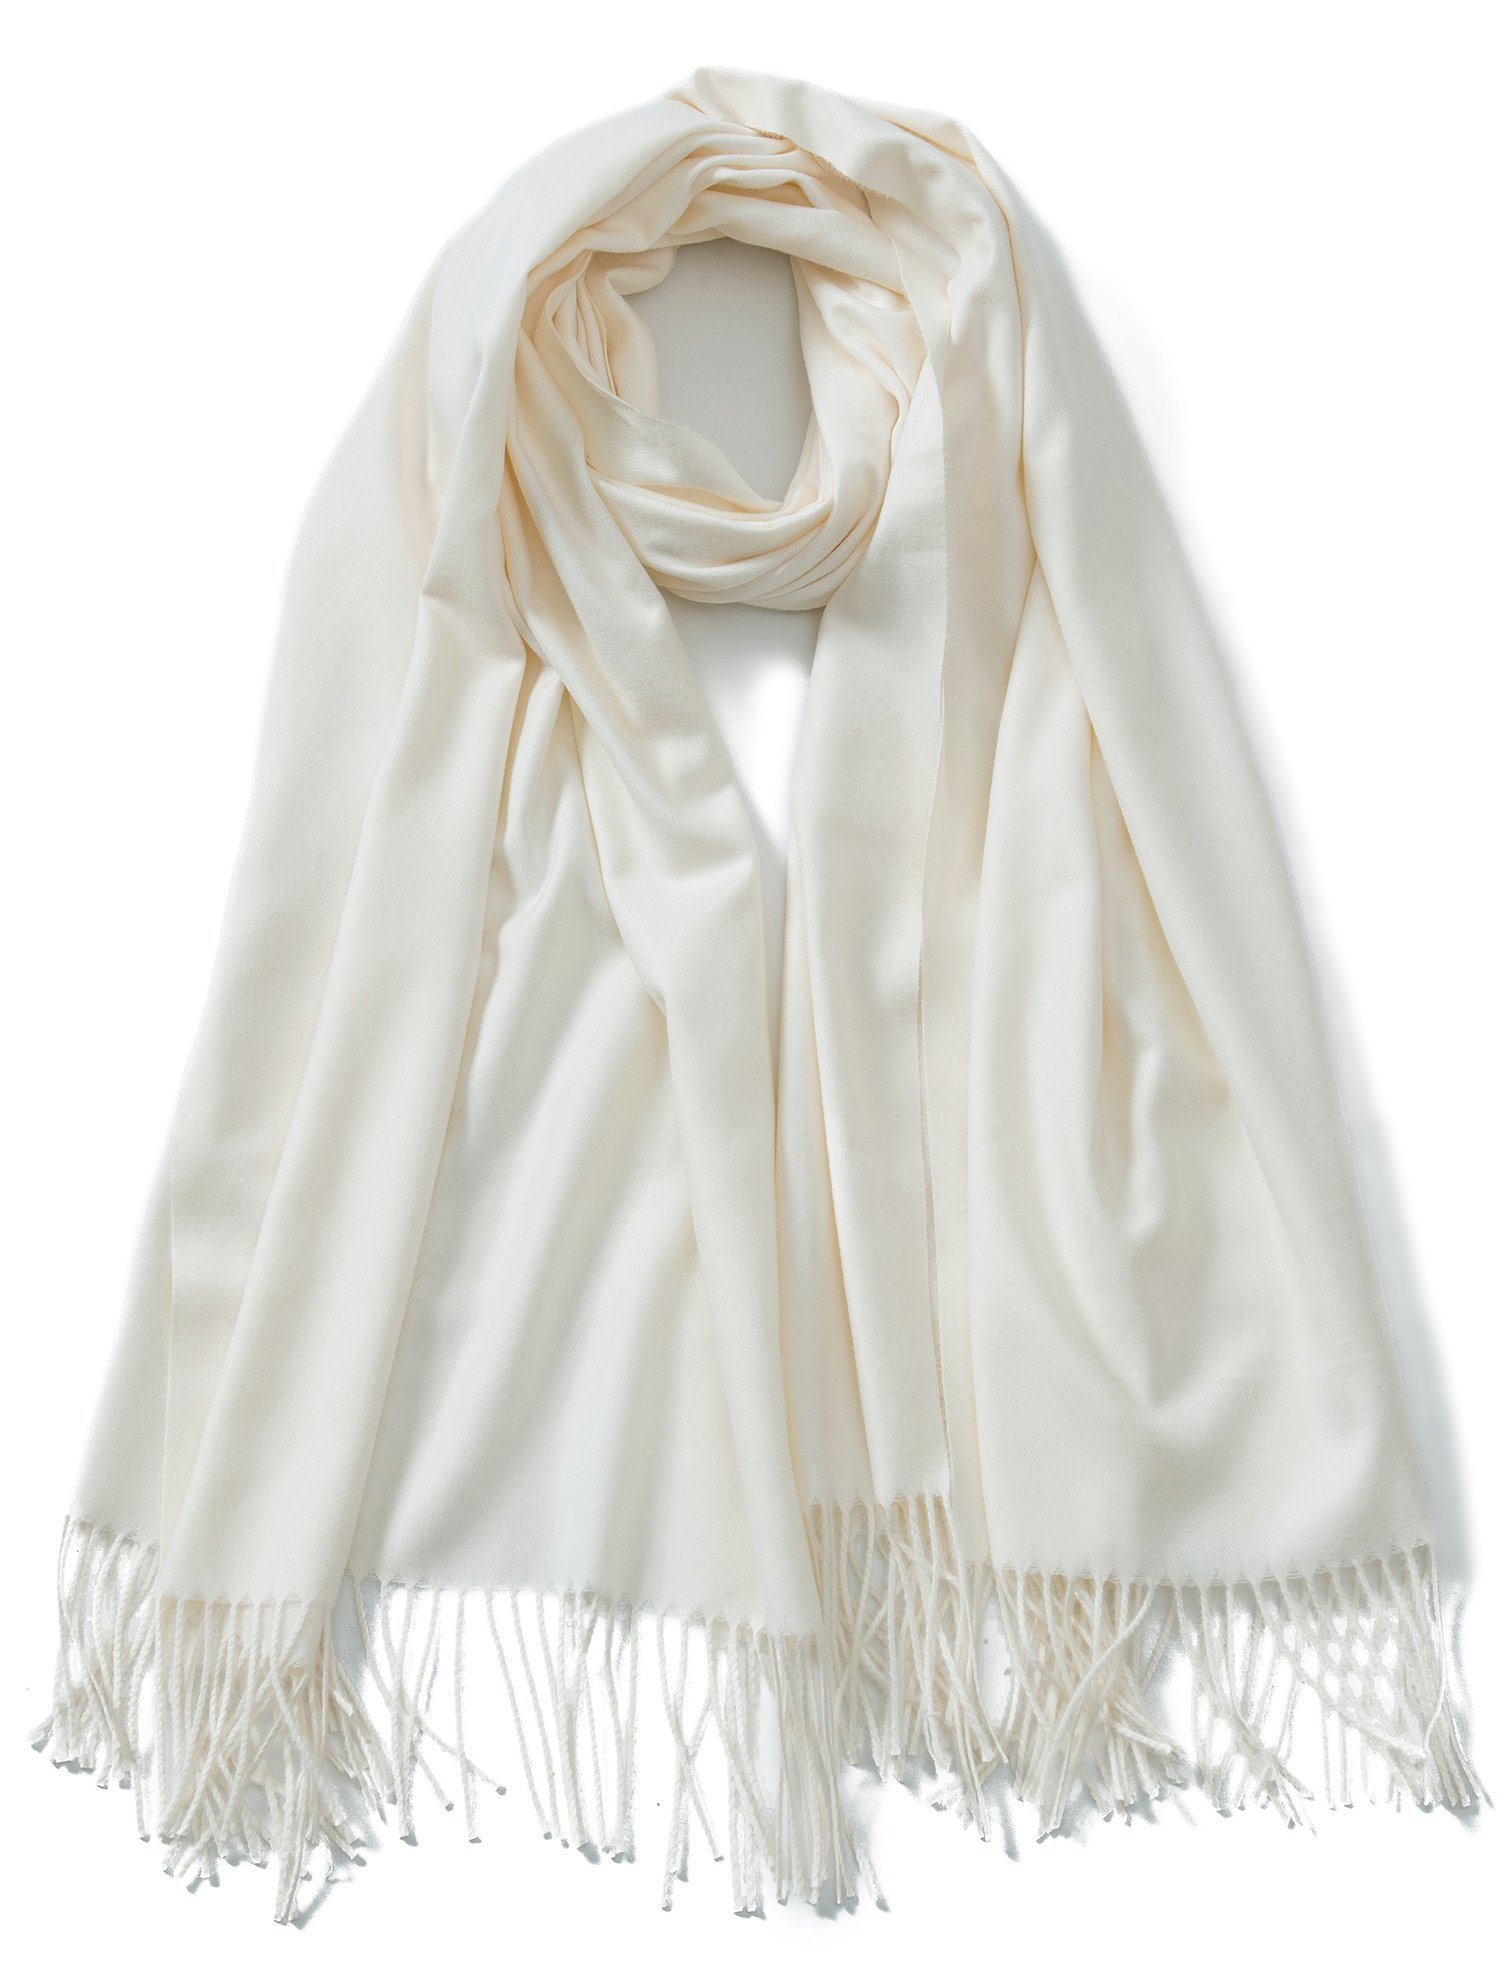 Cindy & Wendy Large Soft Cashmere Feel Pashmina Solid Shawl Wrap Scarf for Women by Cindy and Wendy